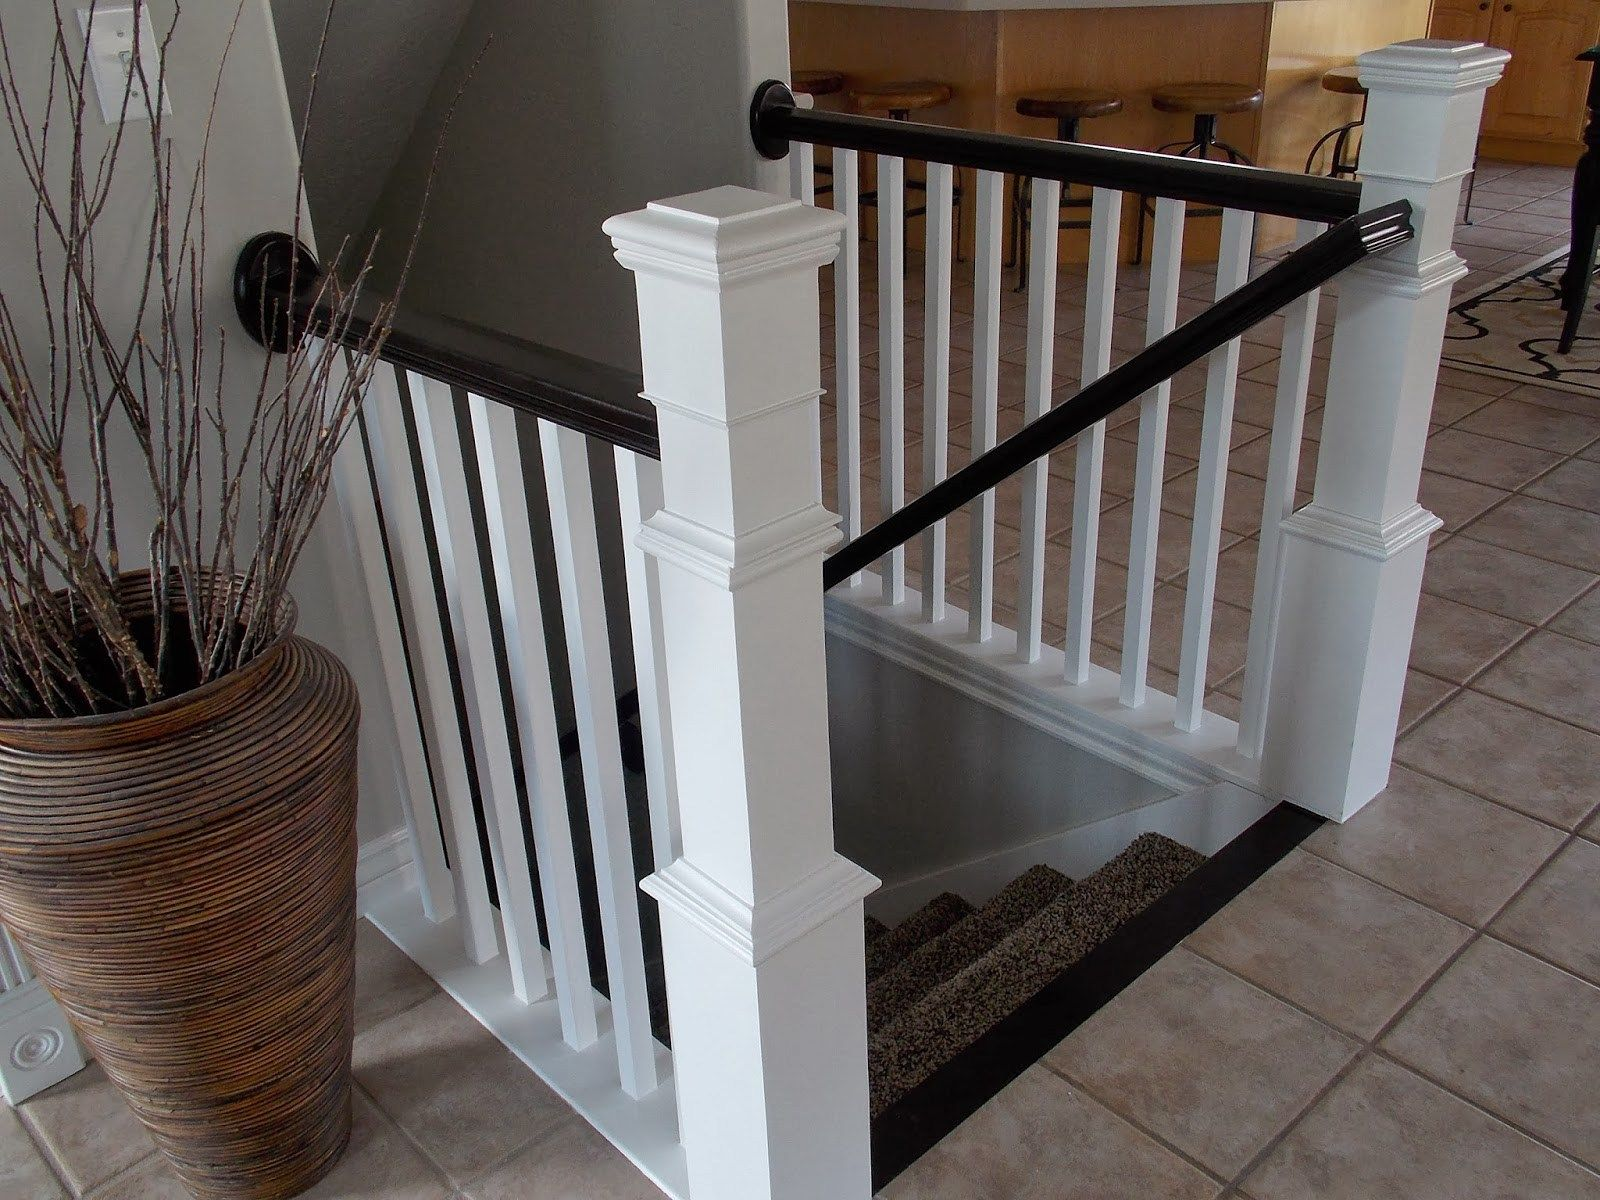 Diy stair banister with new newel post and spindles tda